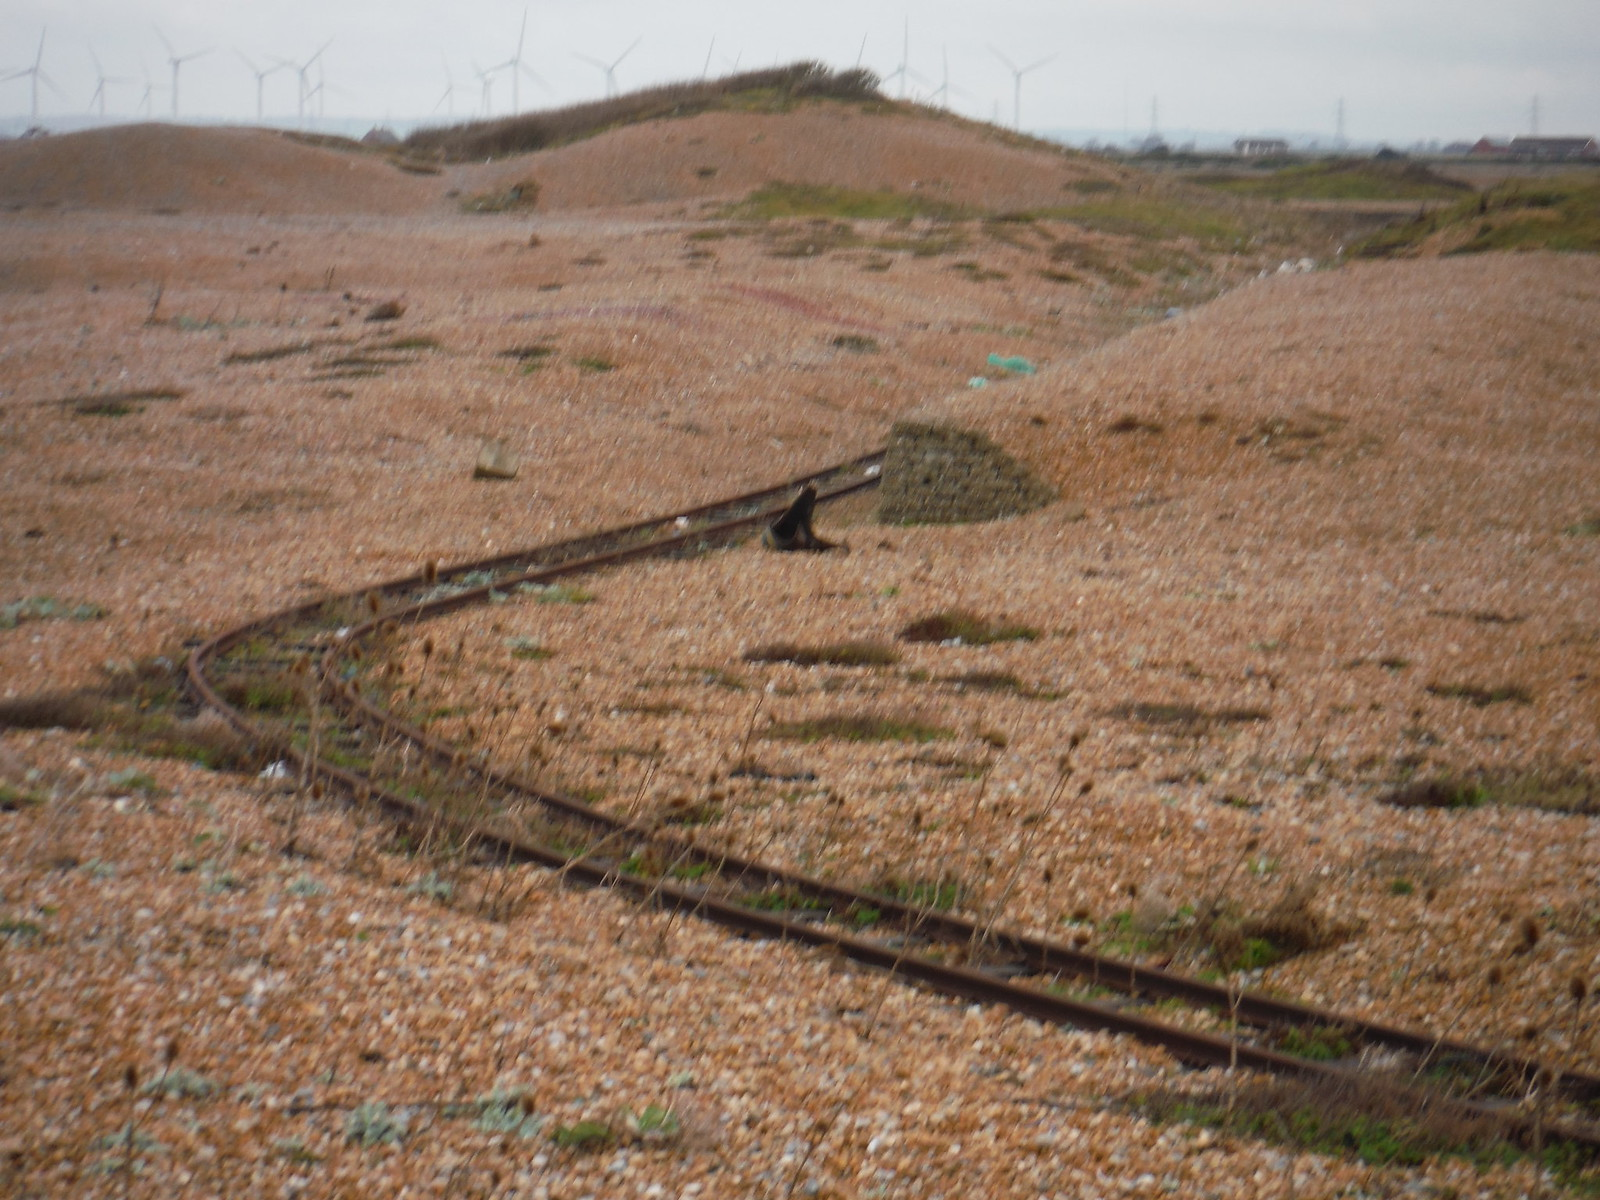 Target Railway, Lydd Ranges SWC 154 - Rye to Dungeness and Lydd-on-Sea or Lydd or Circular